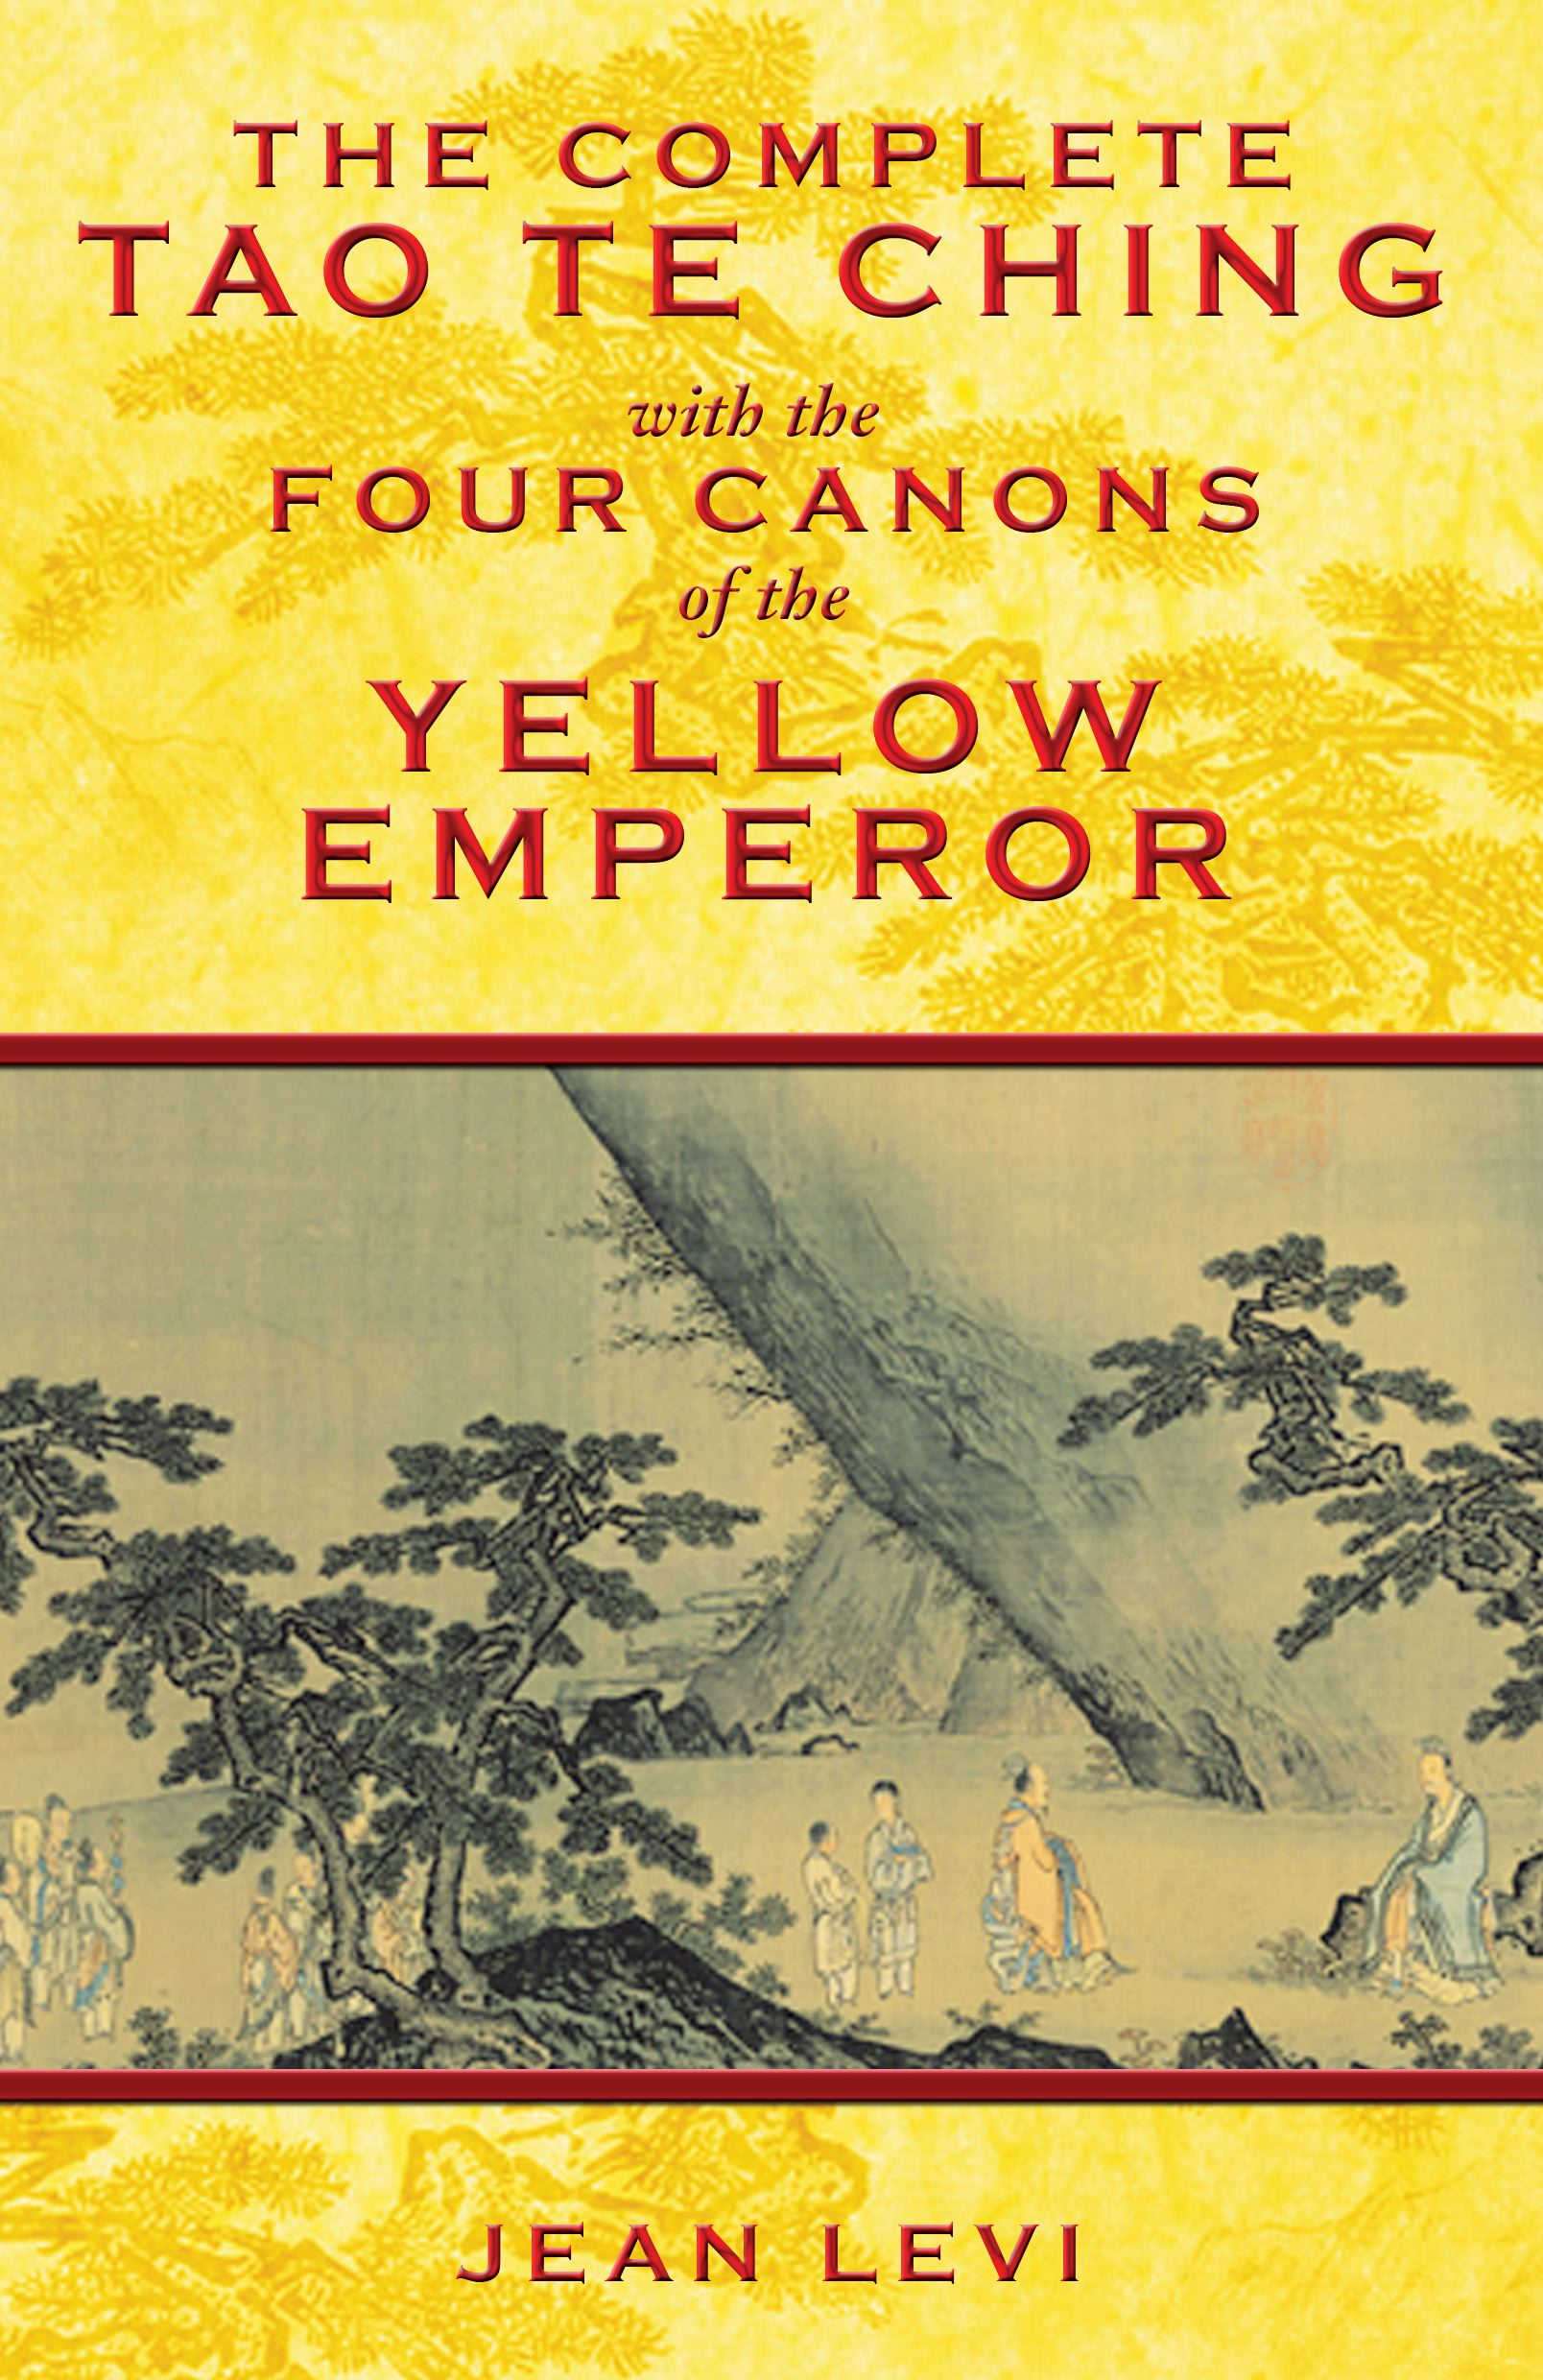 The-complete-tao-te-ching-with-the-four-canons-of-the-yellow-emperor-9781594773594_hr